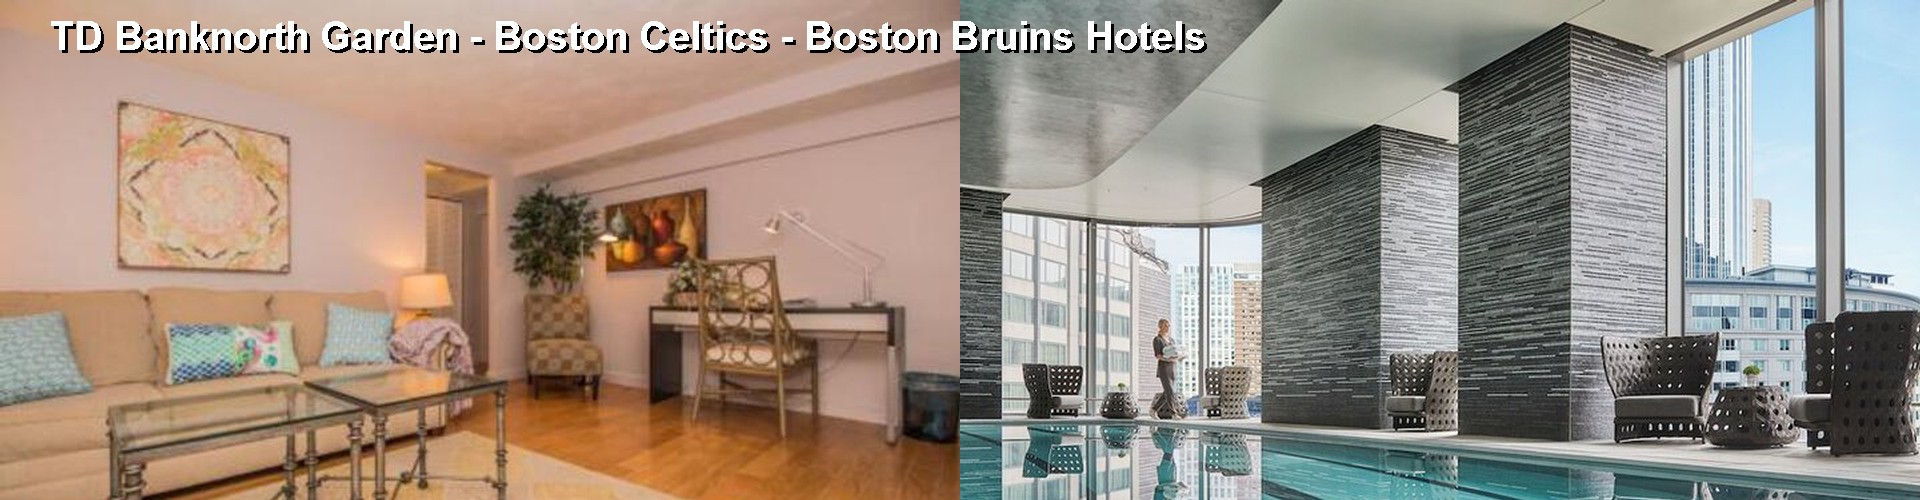 52 Hotels Near Td Banknorth Garden Boston Celtics Boston Bruins Ma